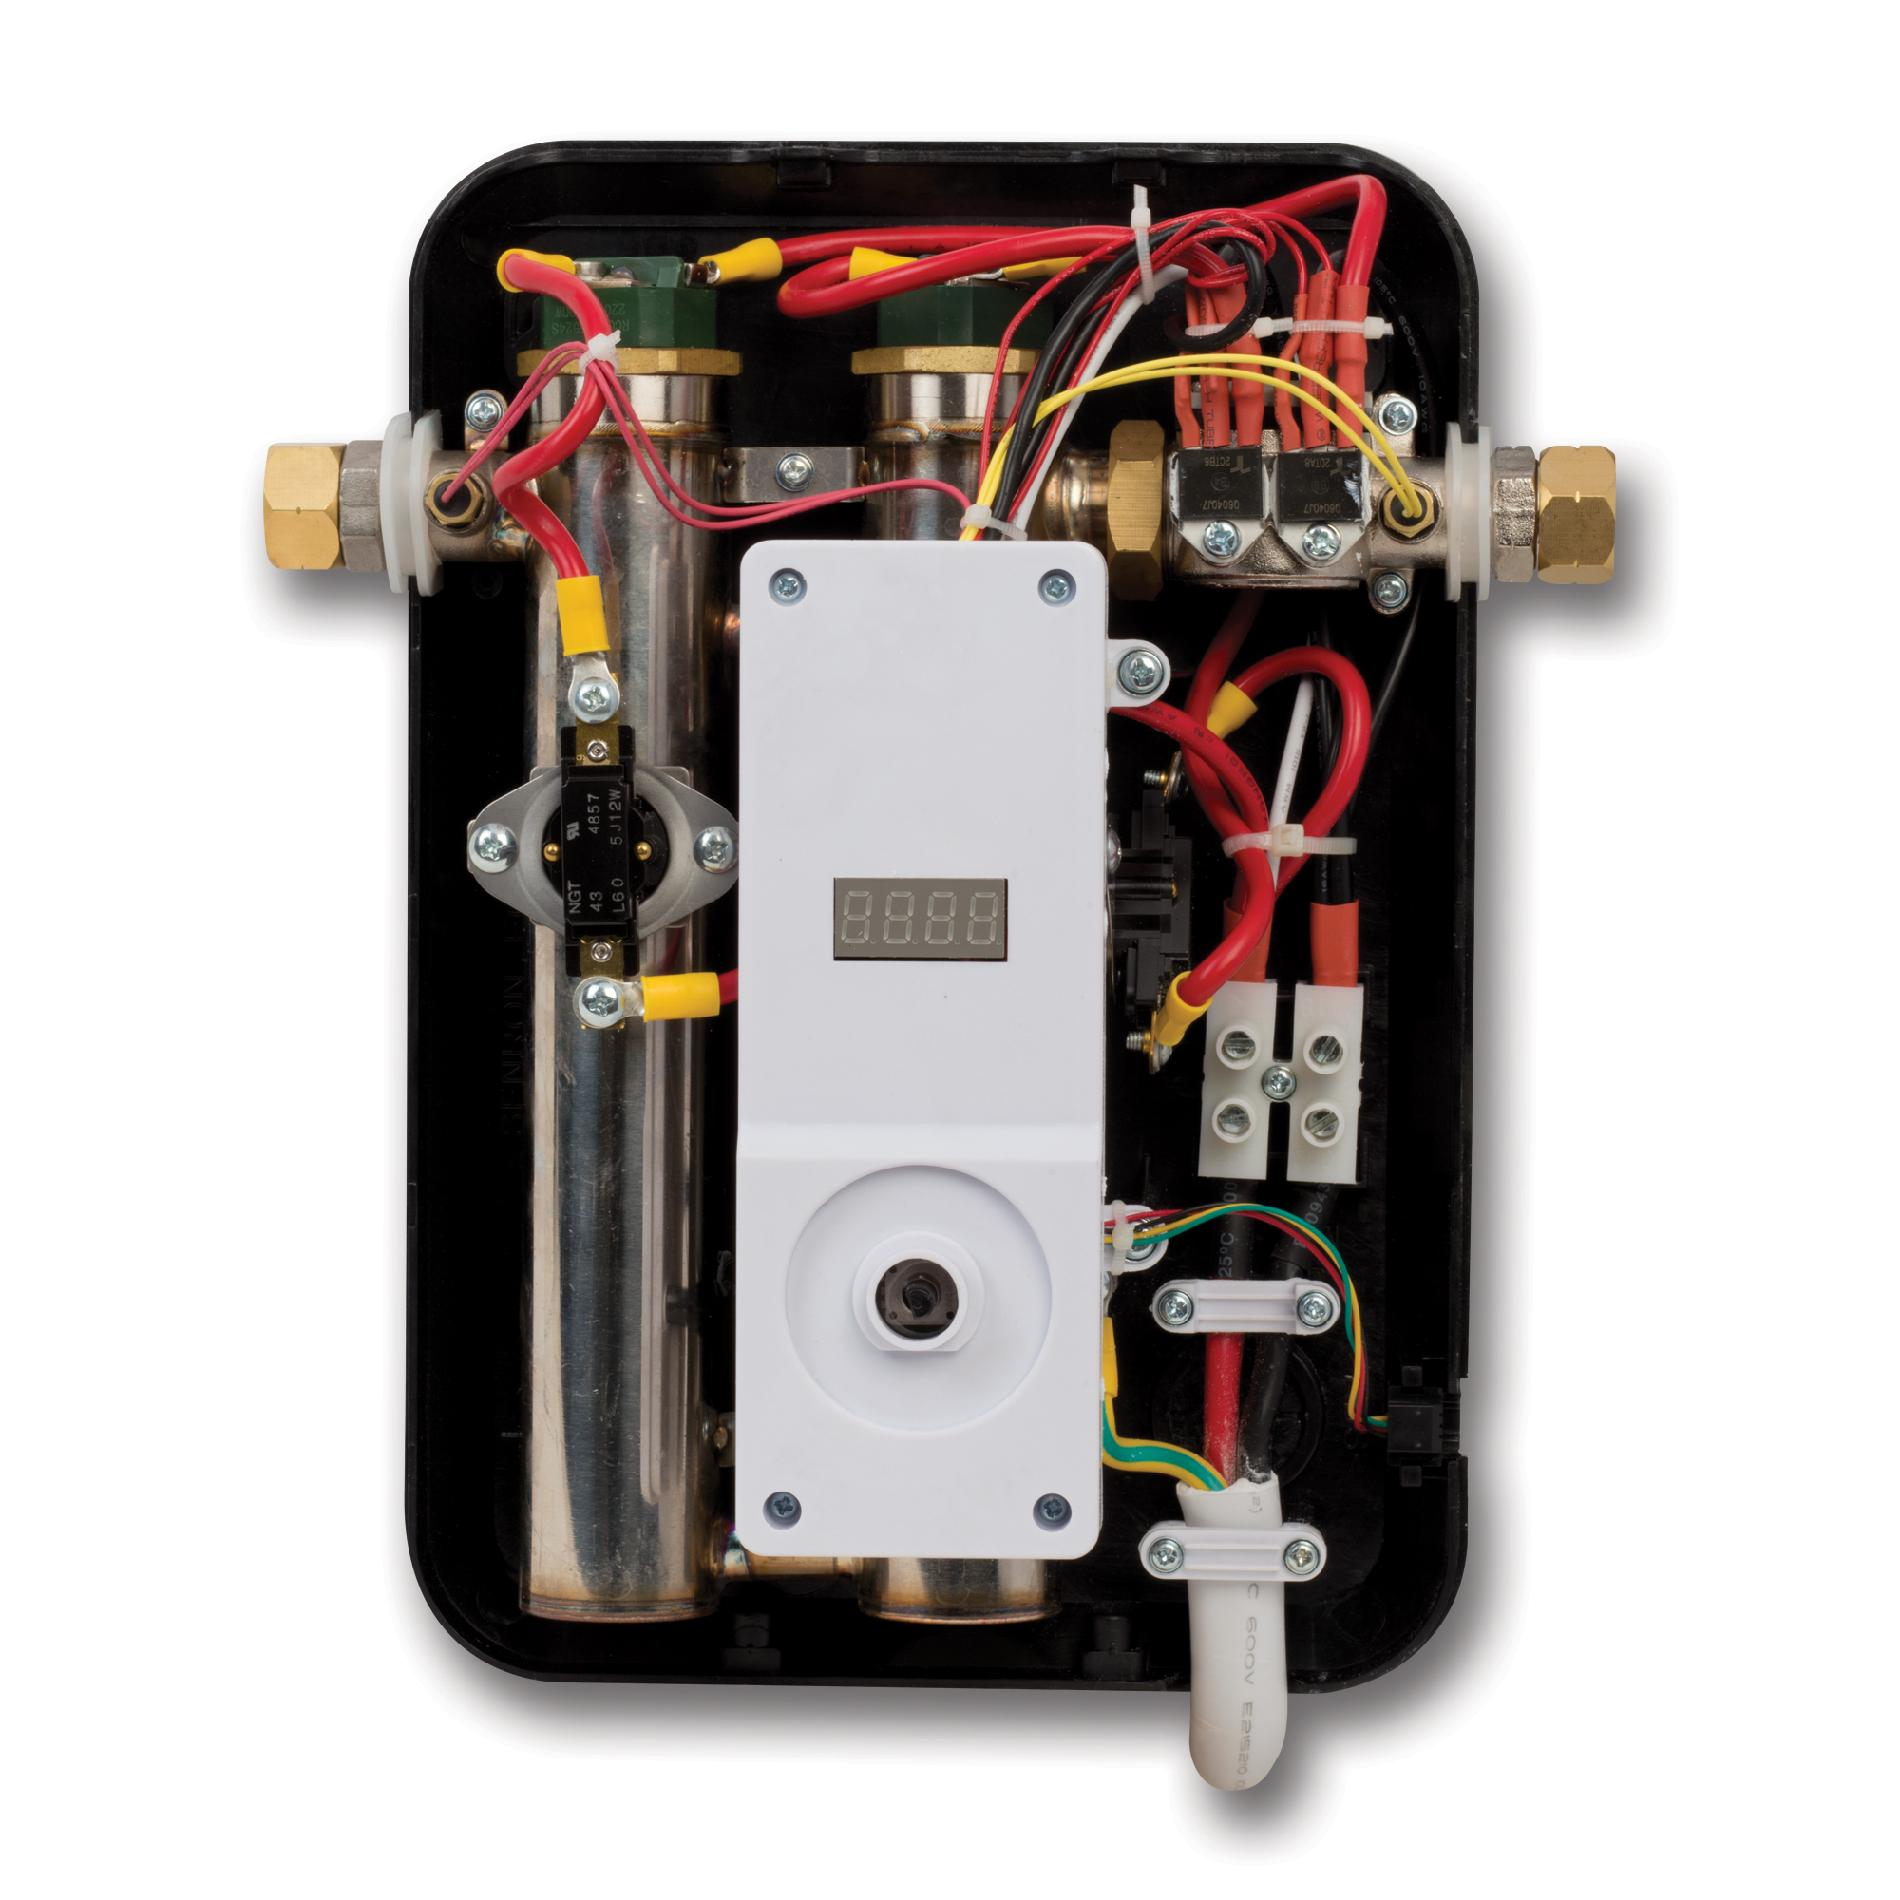 EcoSmart Self Modulating ECO 11 Tankless Water Heater with Patented Self Modulating Technology